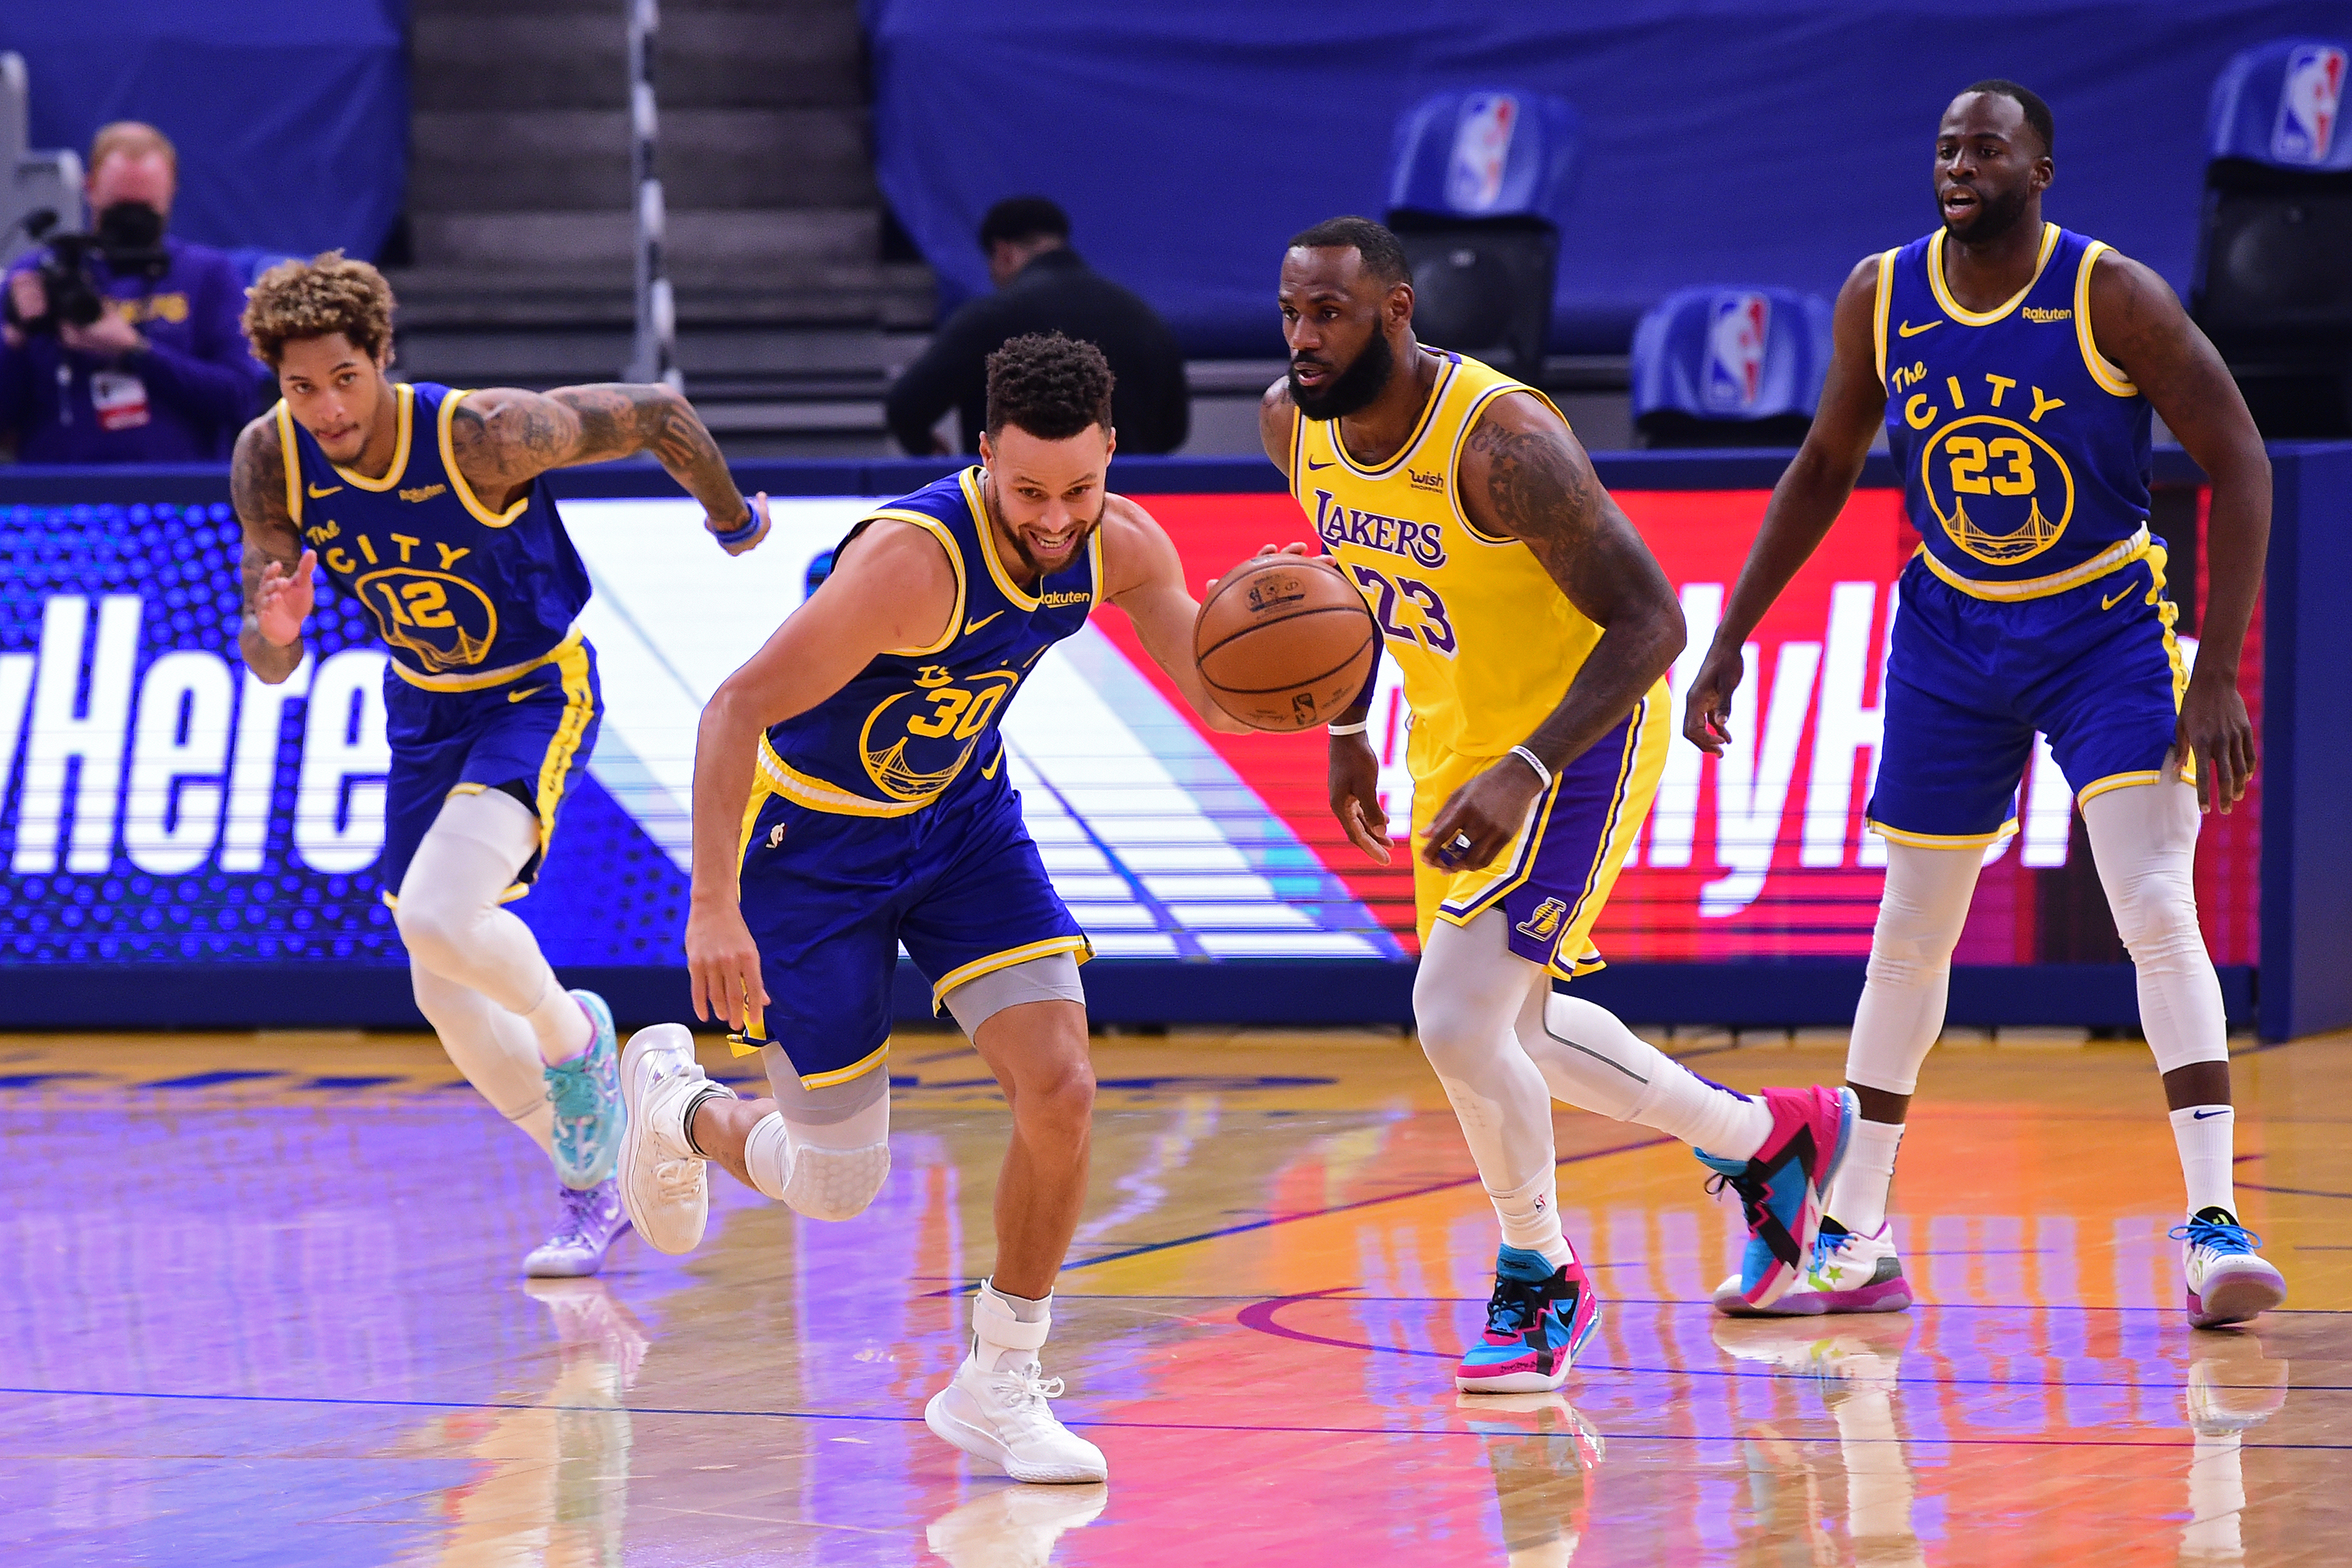 Stephen Curry of the Golden State Warriors dribbles down court during the game against the Los Angeles Lakers on March 15, 2021 at Chase Center in San Francisco, California.